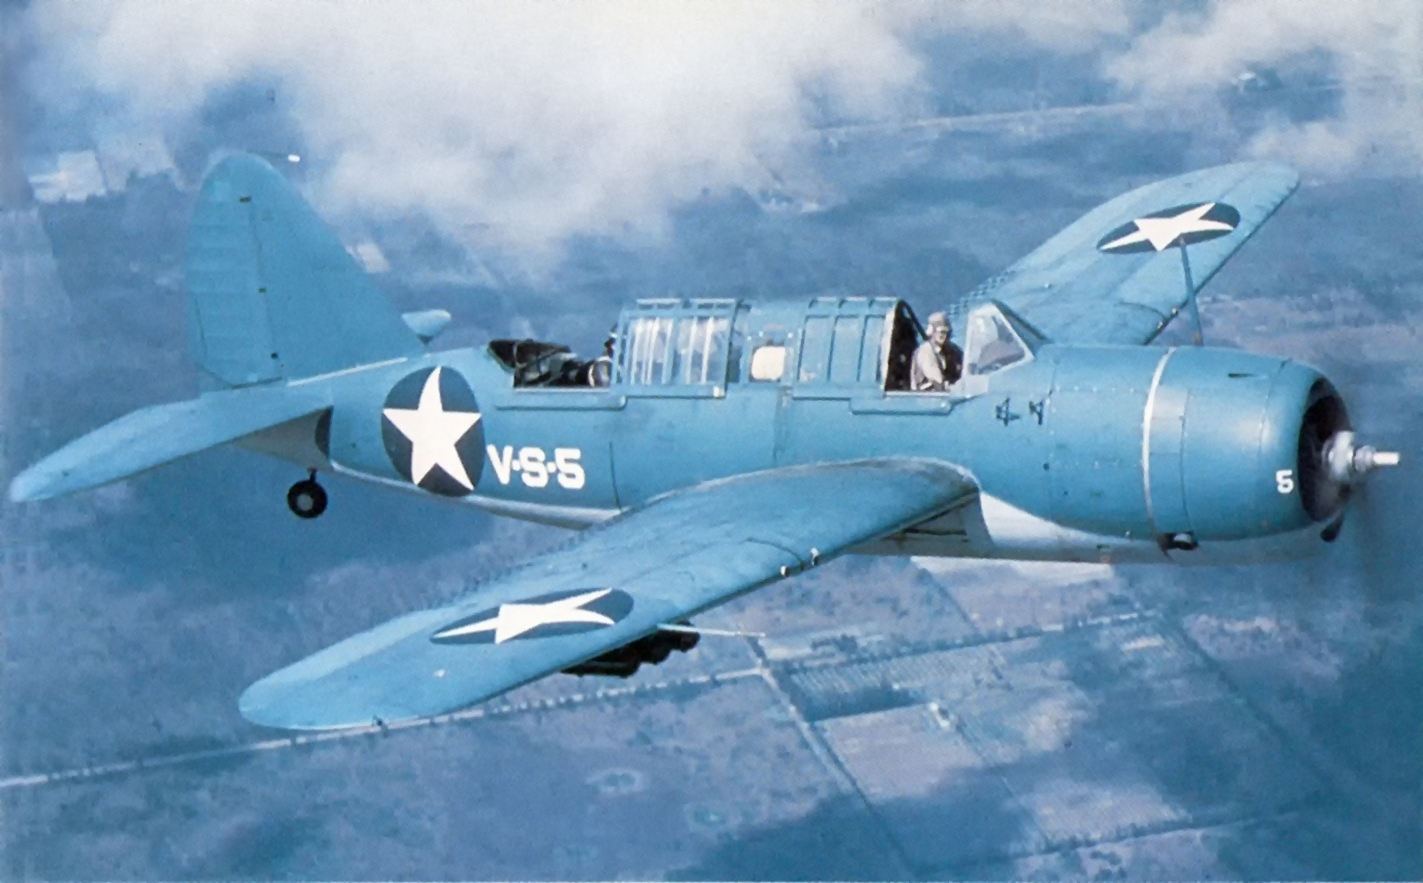 A U.S. Navy Brewster SB2A-4 Buccaneer in flight near Vero Beach, Florida (USA), in 1942